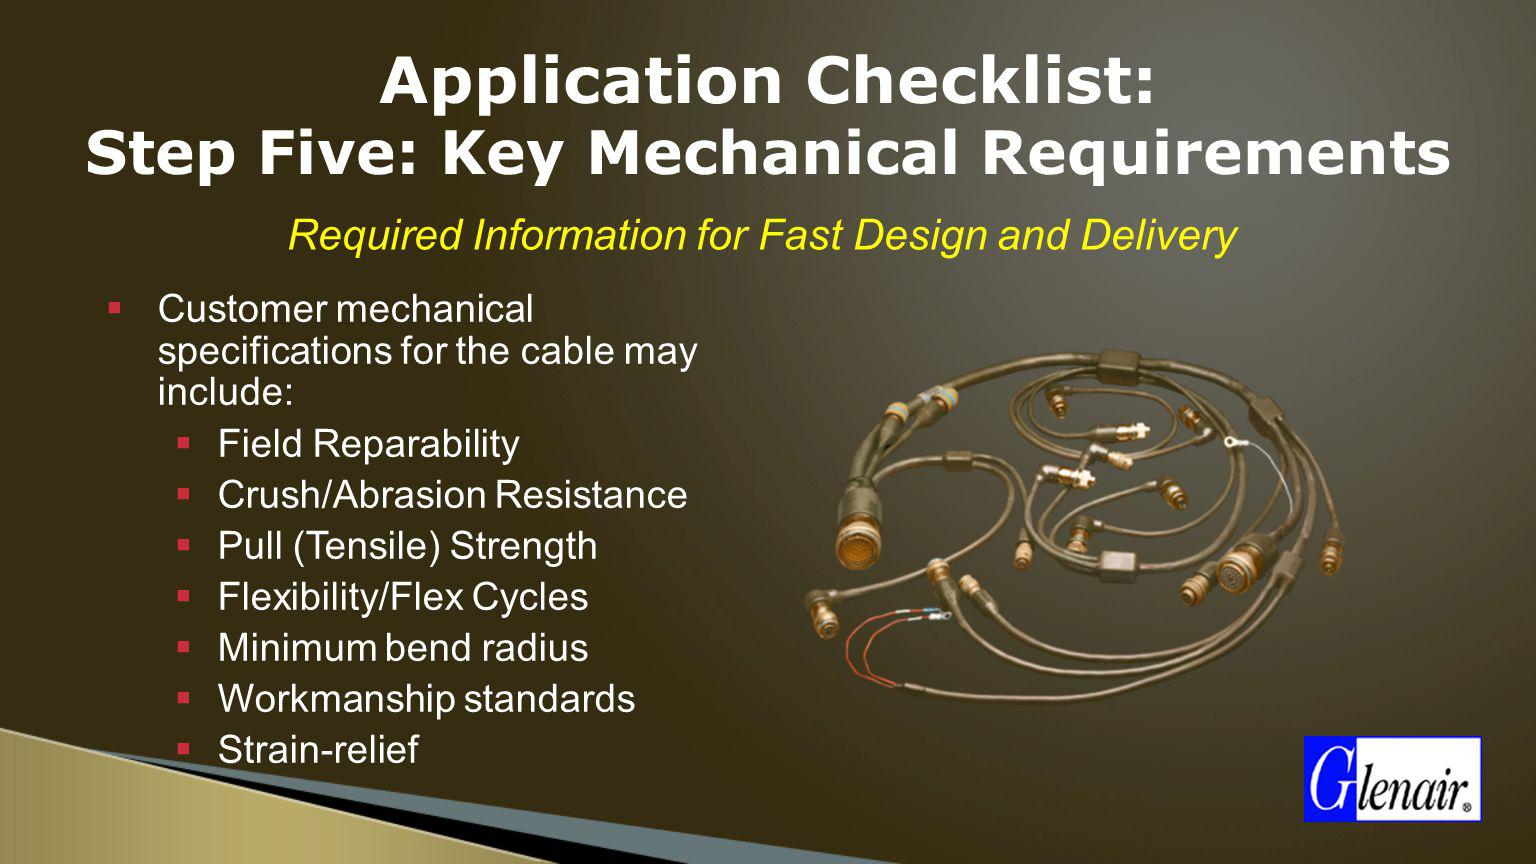 Application Checklist: Step Five: Key Mechanical Requirements